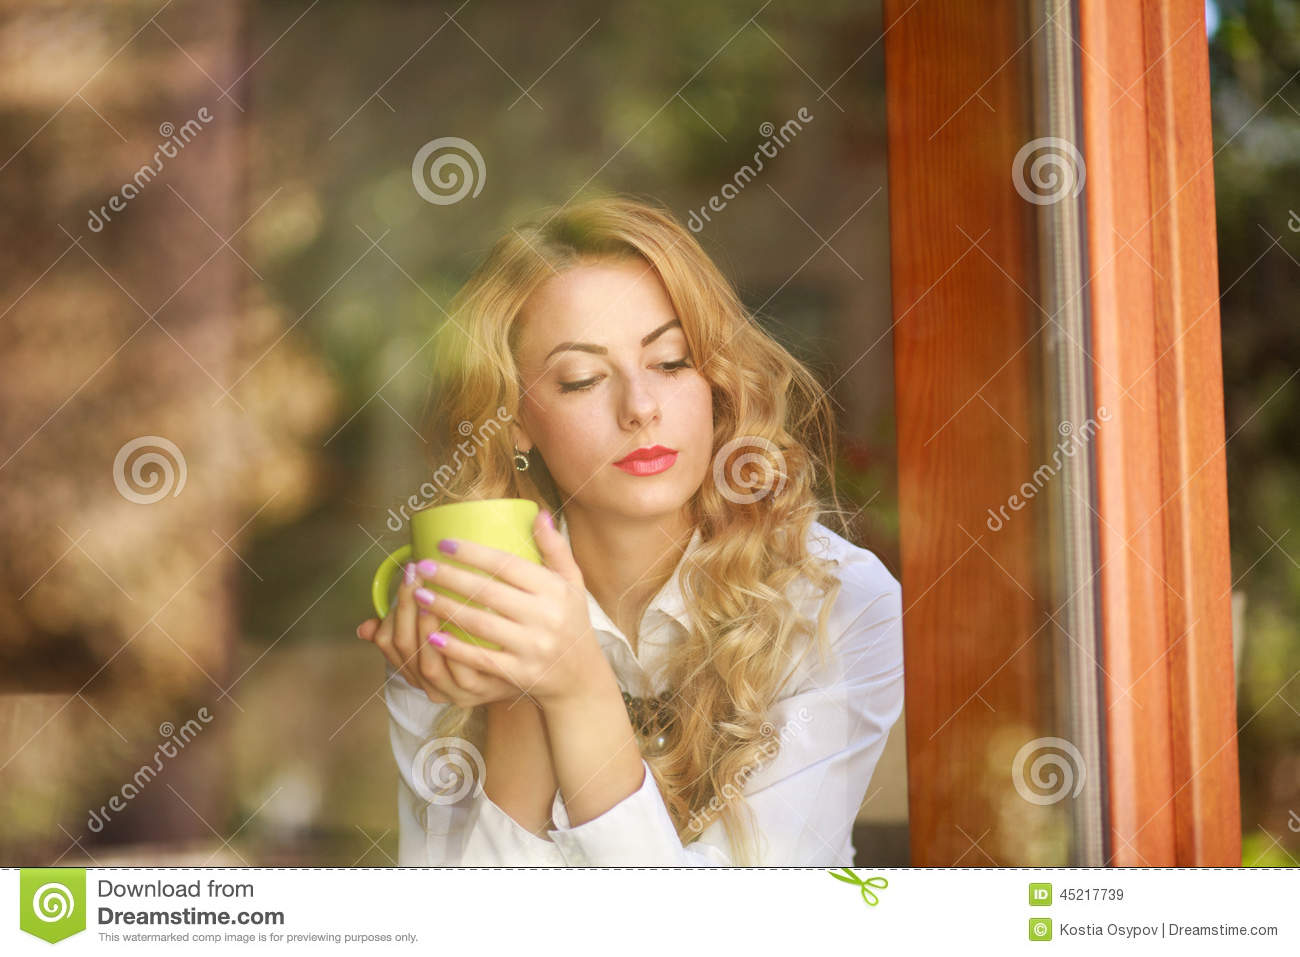 Pensive Woman Drinking Coffee At Home Looking Out The